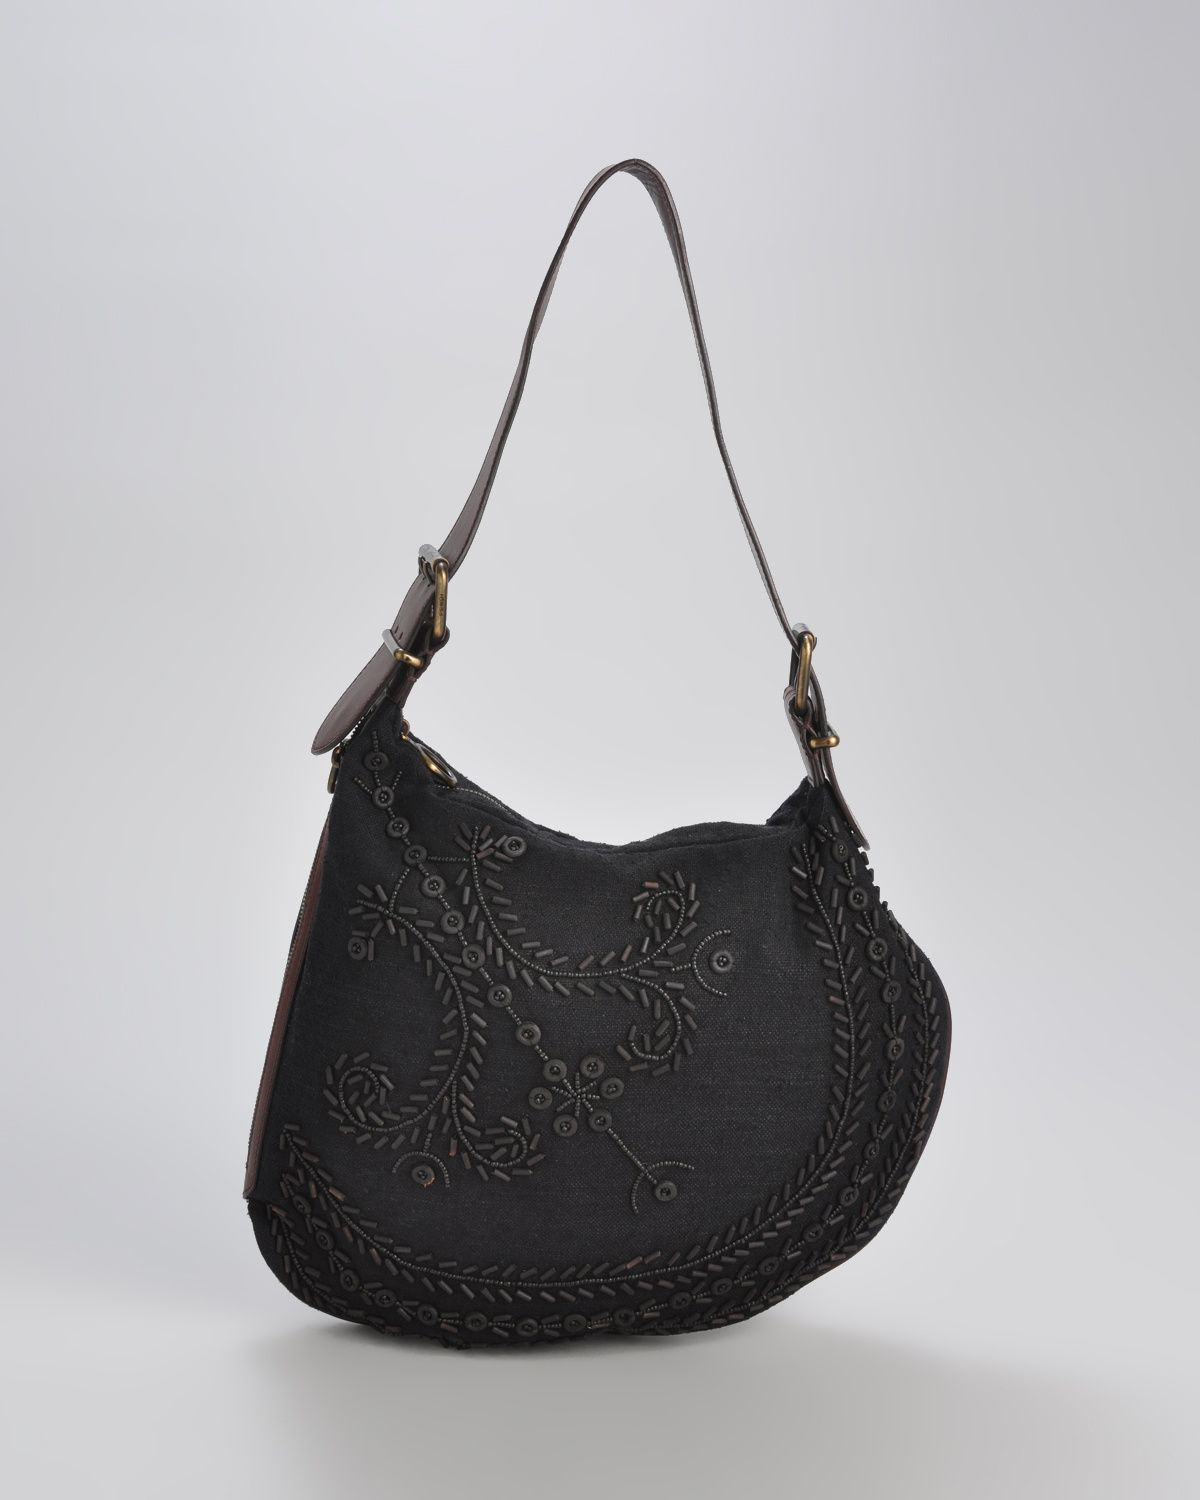 Fendi Rare Limited Edition Embroidered Saddle bag - My old company, I will always follow and love their products and this is one of them!  It is incredibly hard to find!!!